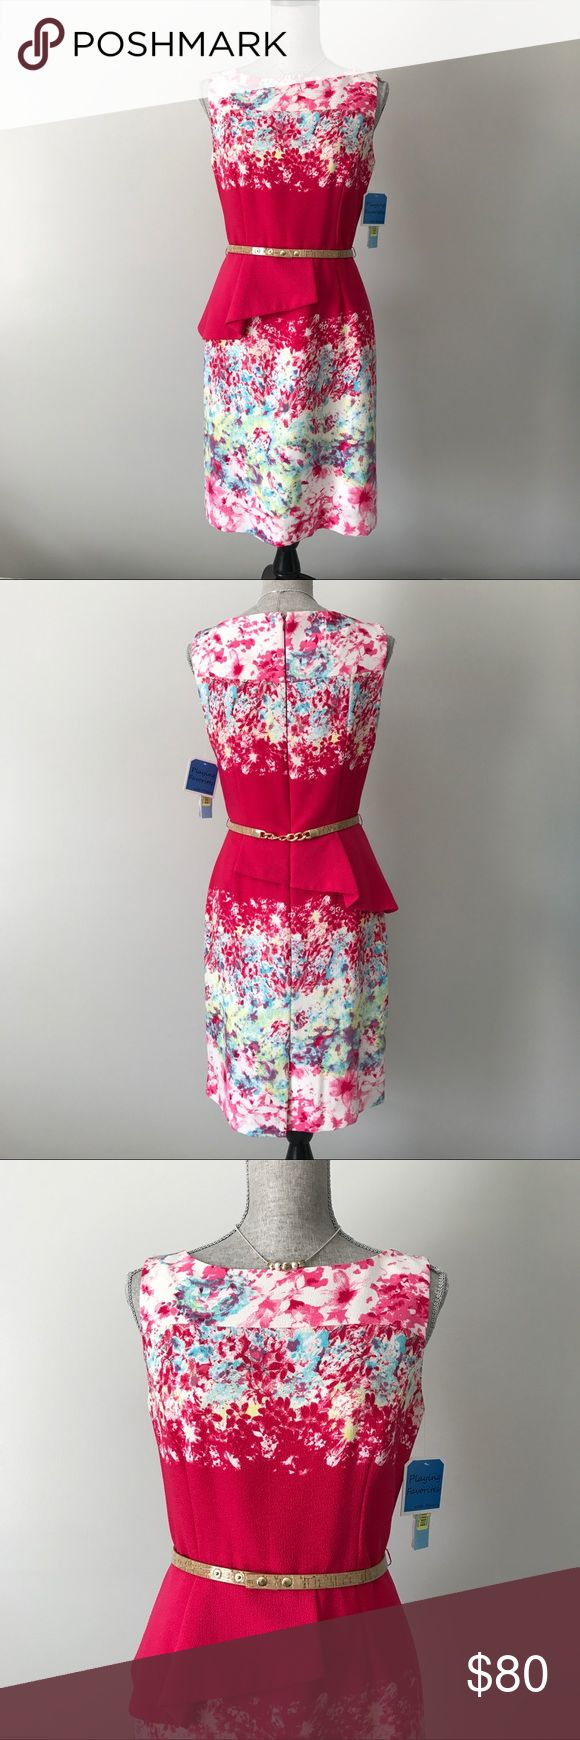 Antonio Melani Tiago Dress NWT Antonio Melani Tiago Fuchsia Dress with splashes of color and a gold-toned and cork styled belt. ANTONIO MELANI Dresses